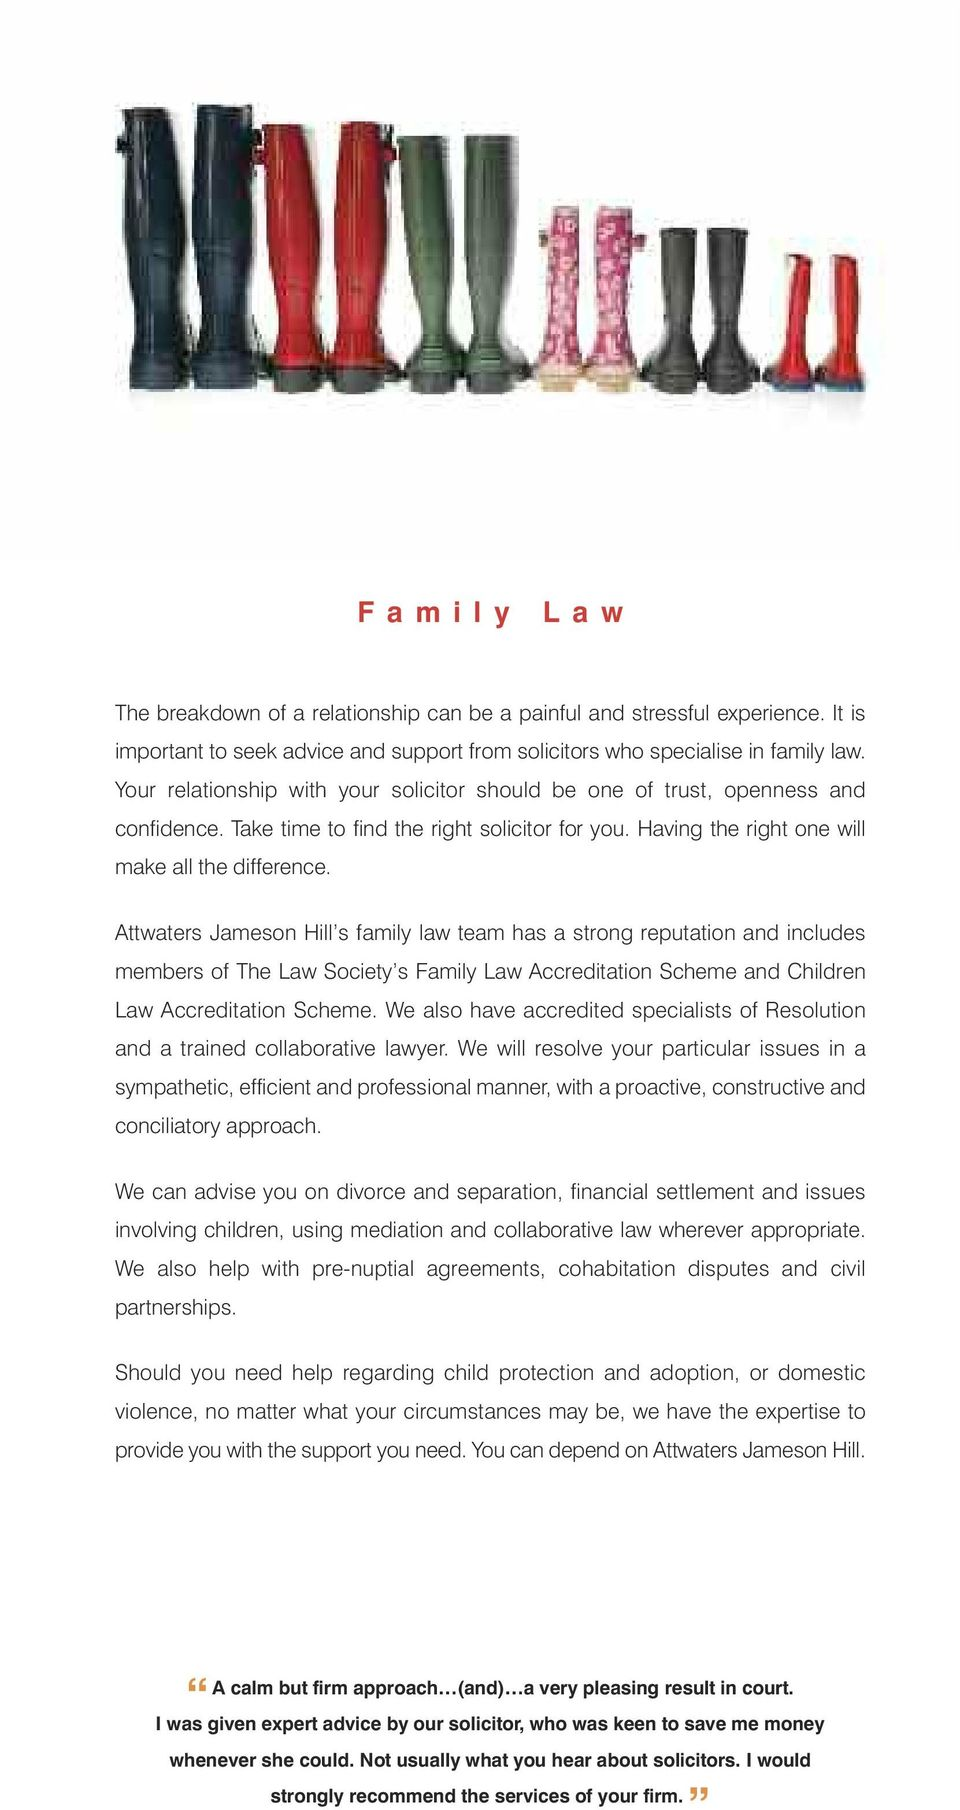 Attwaters Jameson Hill s family law team has a strong reputation and includes members of The Law Society s Family Law Accreditation Scheme and Children Law Accreditation Scheme.